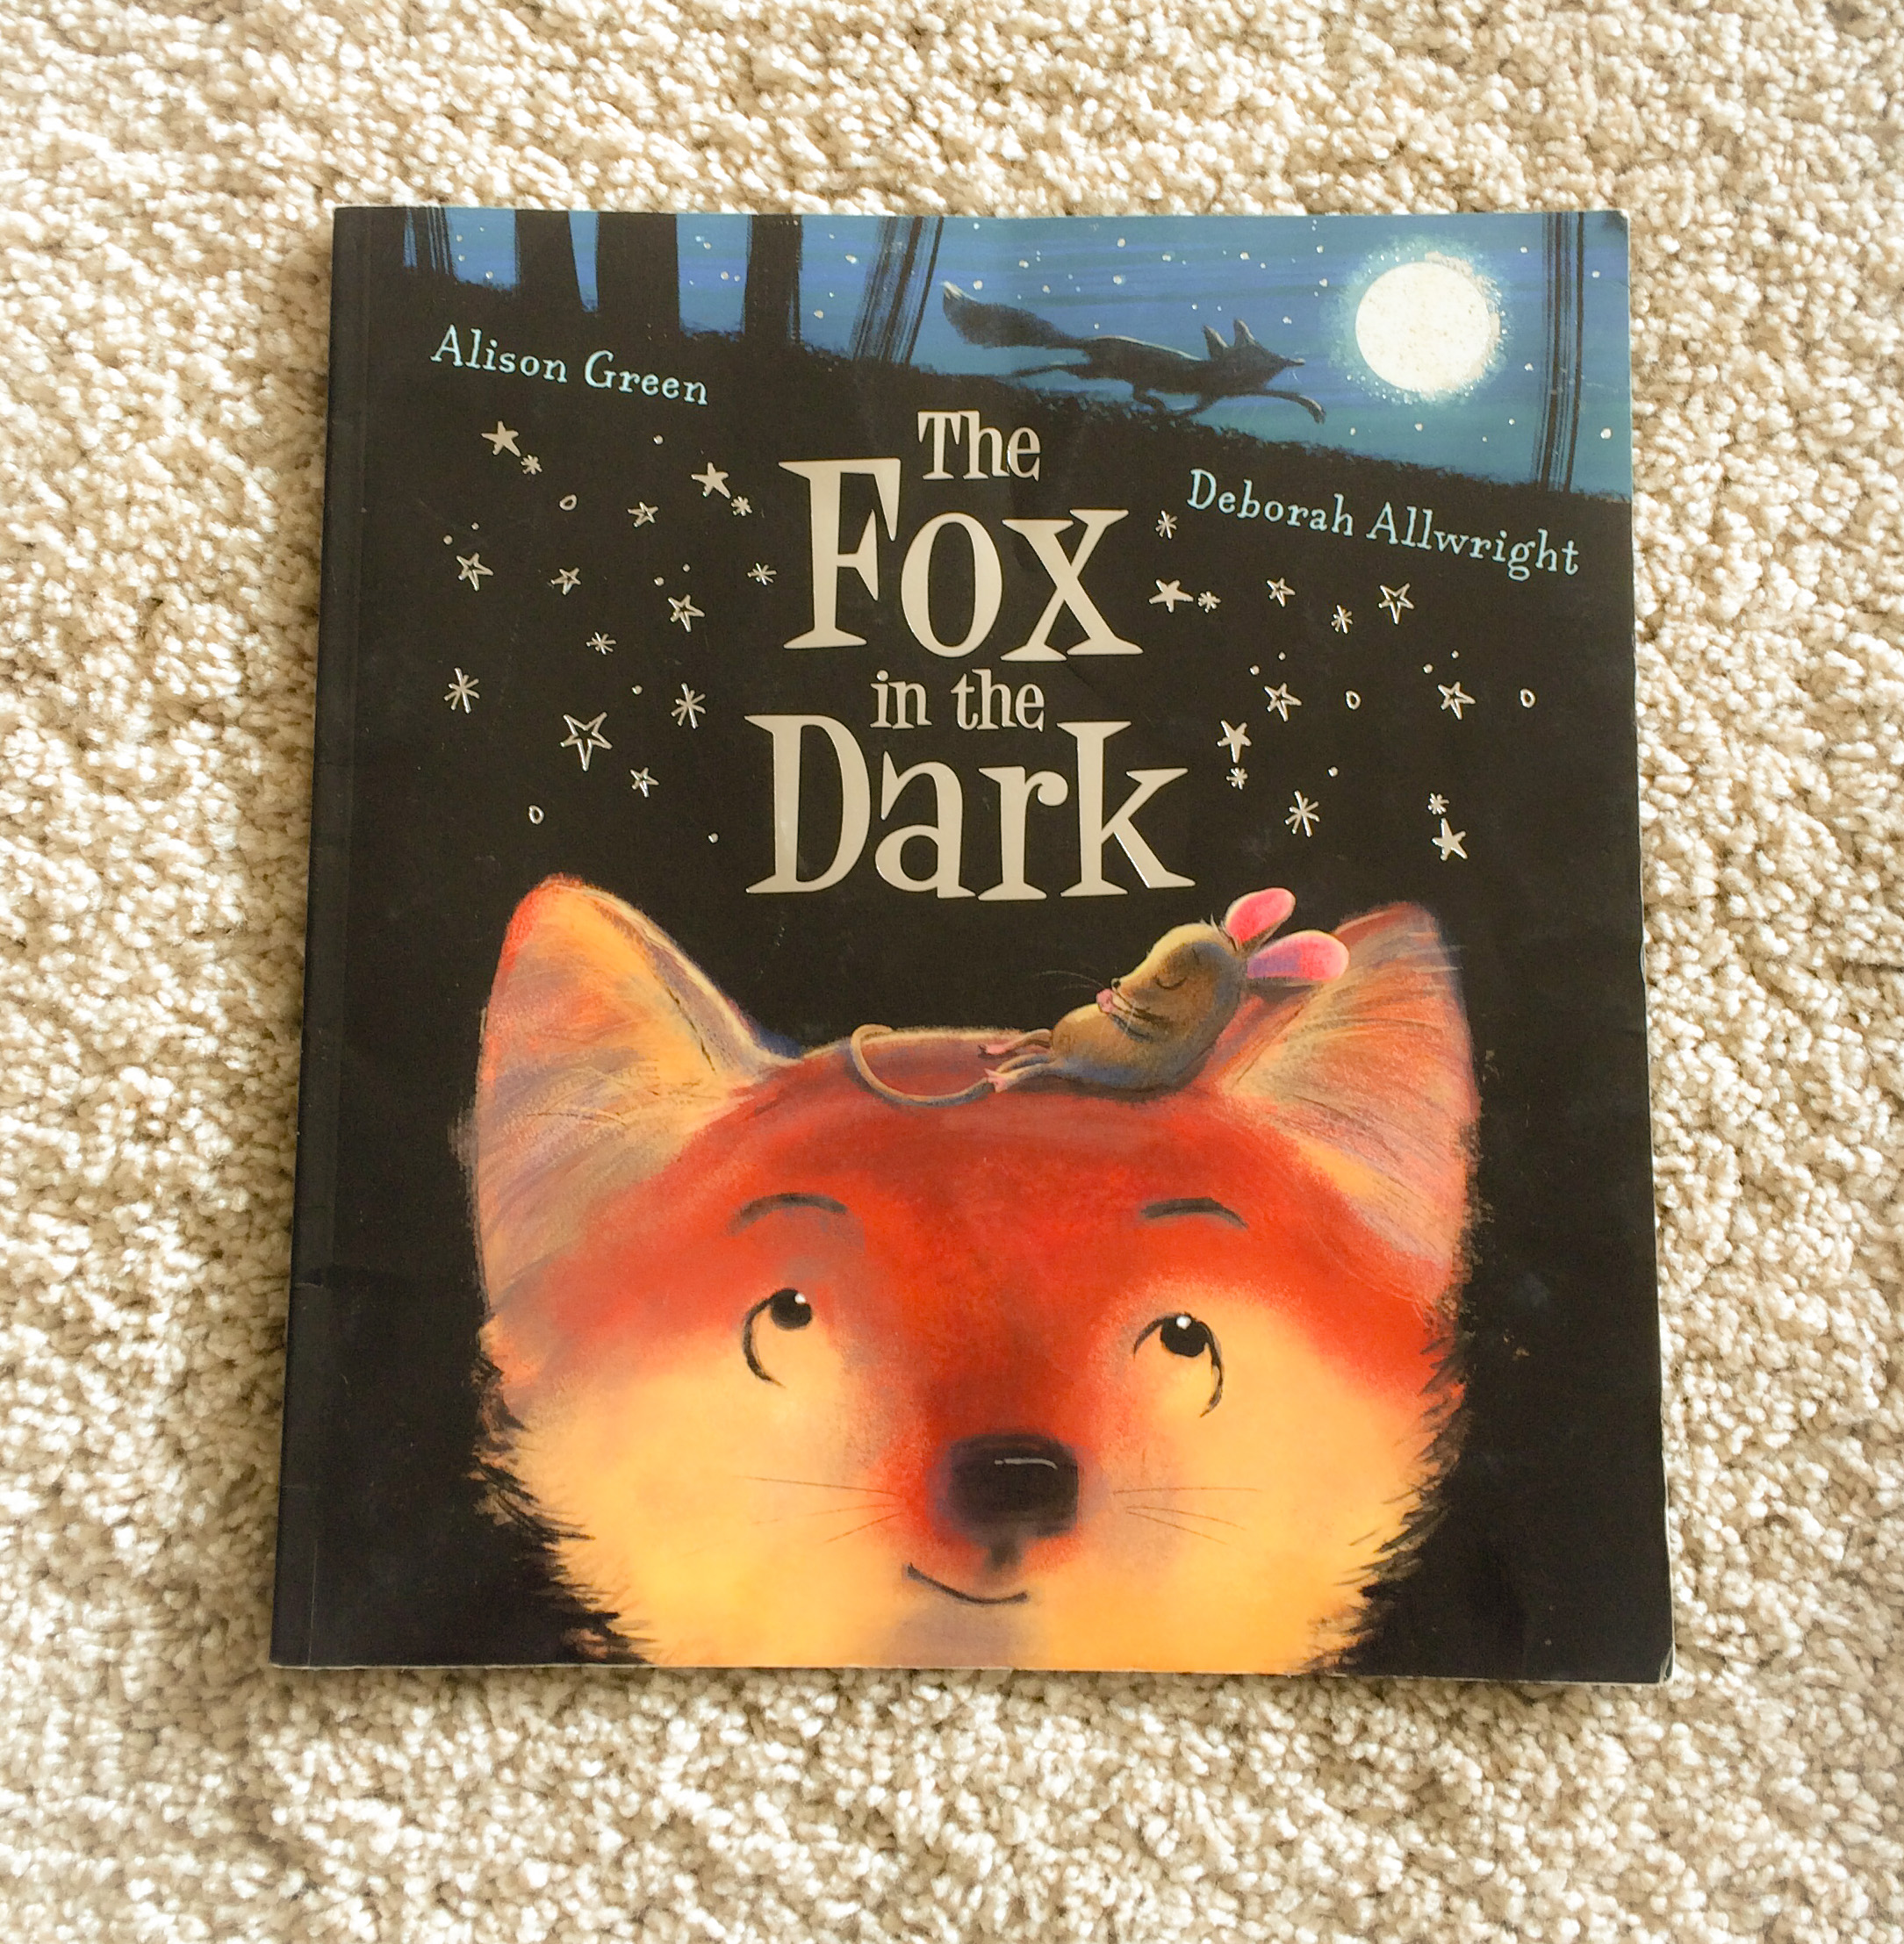 Children's book review - The Fox in the Dark by Alison Green and Deborah Allwright